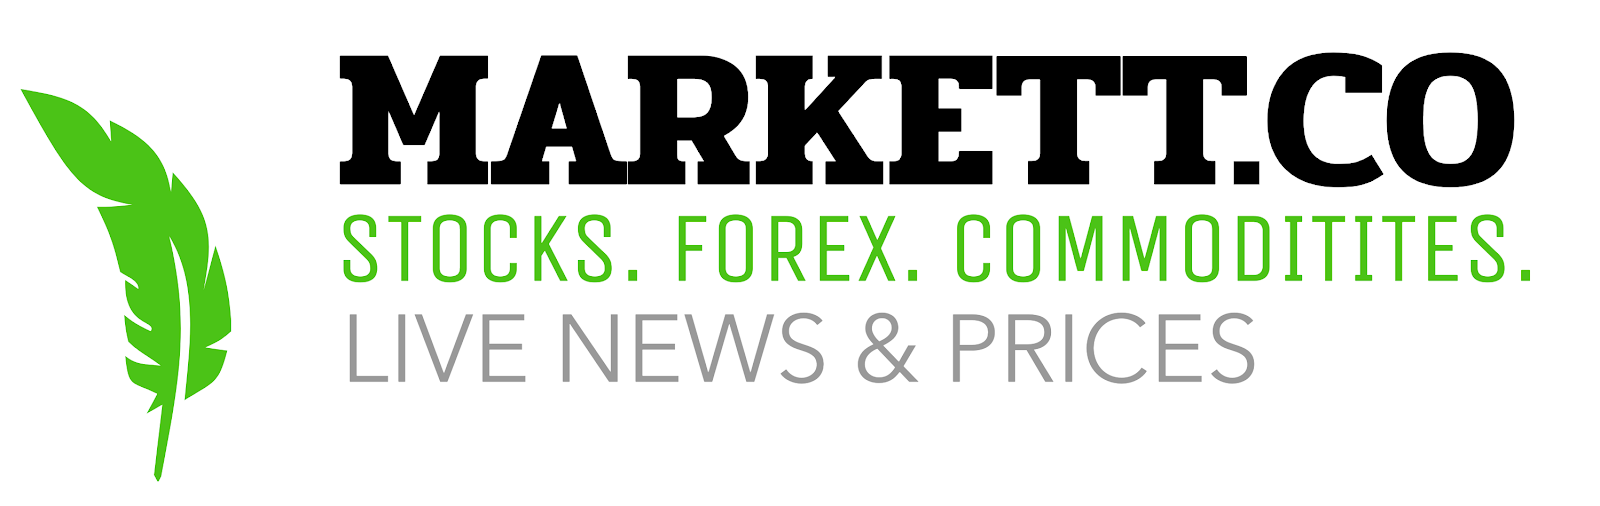 Markett.co - Leading News in Stocks, Forex & Commoditites.